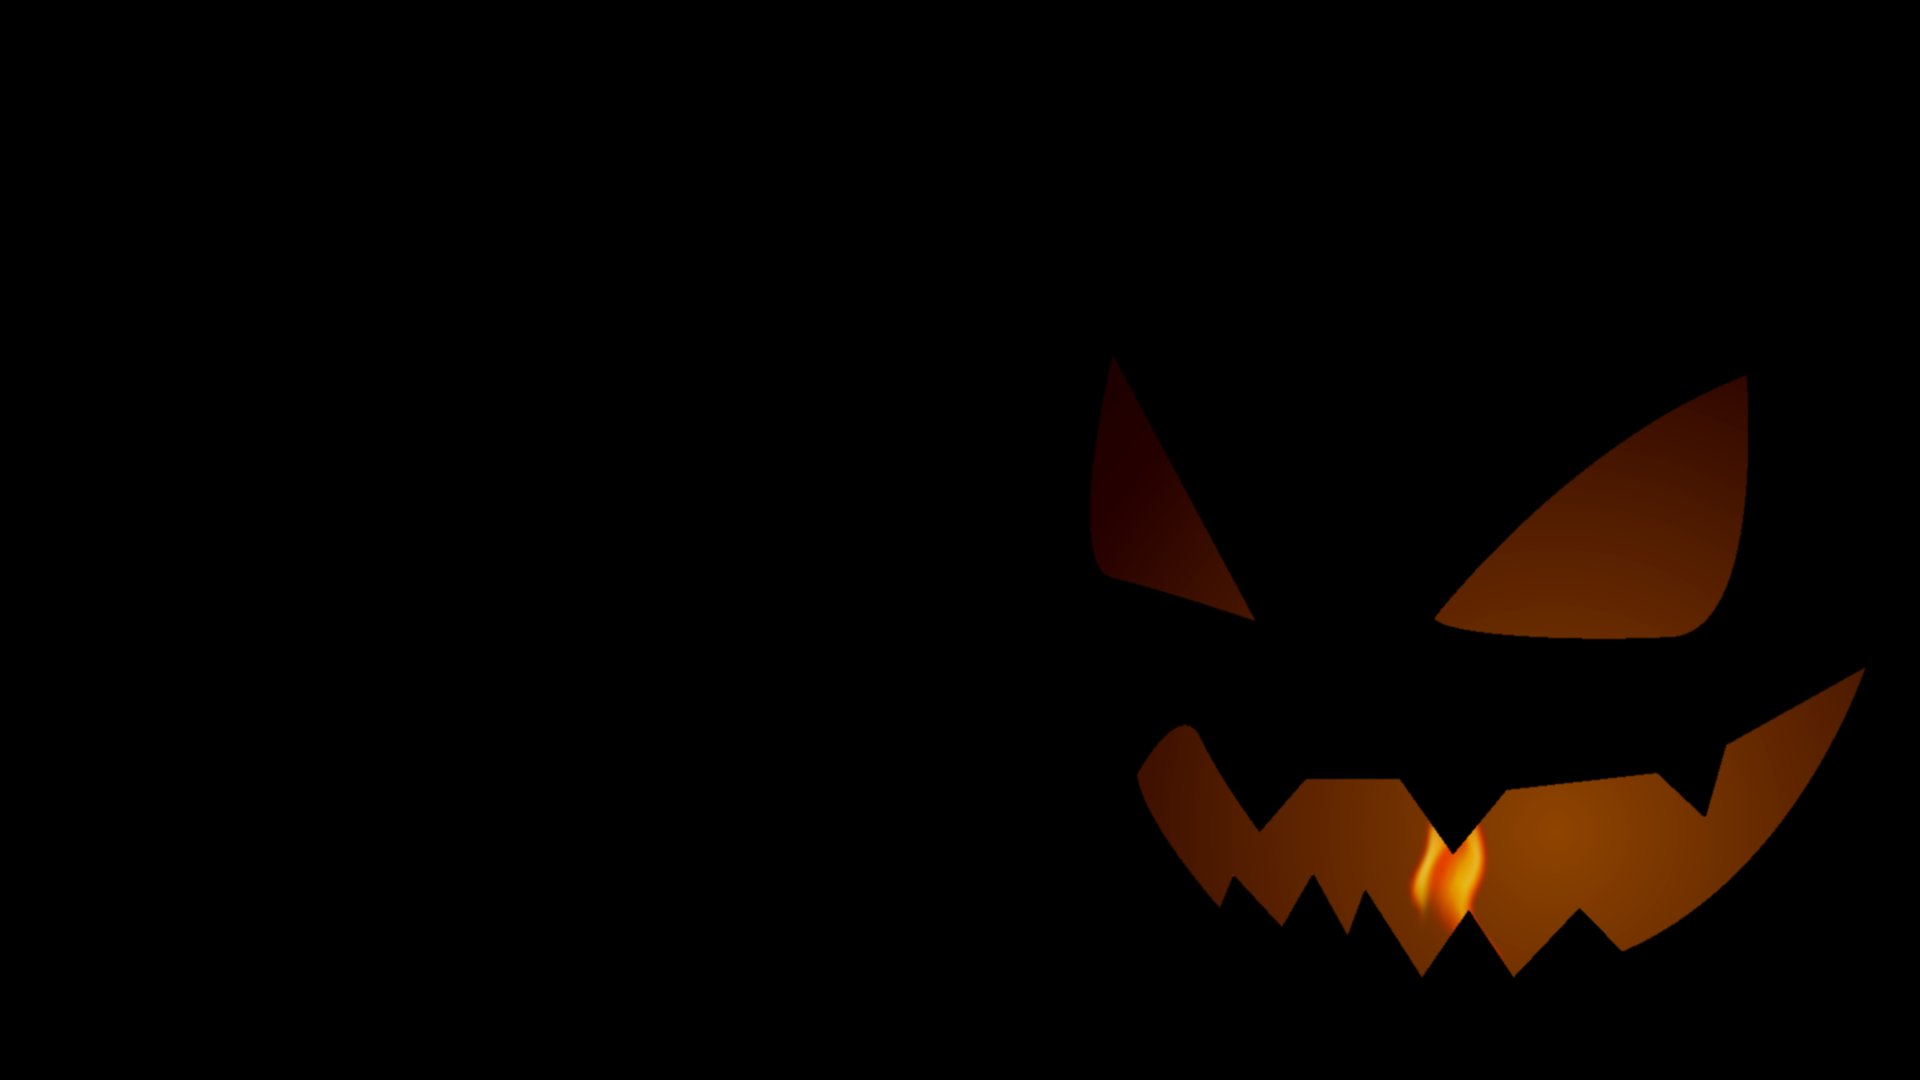 Your Desktop With Unusual Halloween Backgrounds Animated Halloween 1920x1080